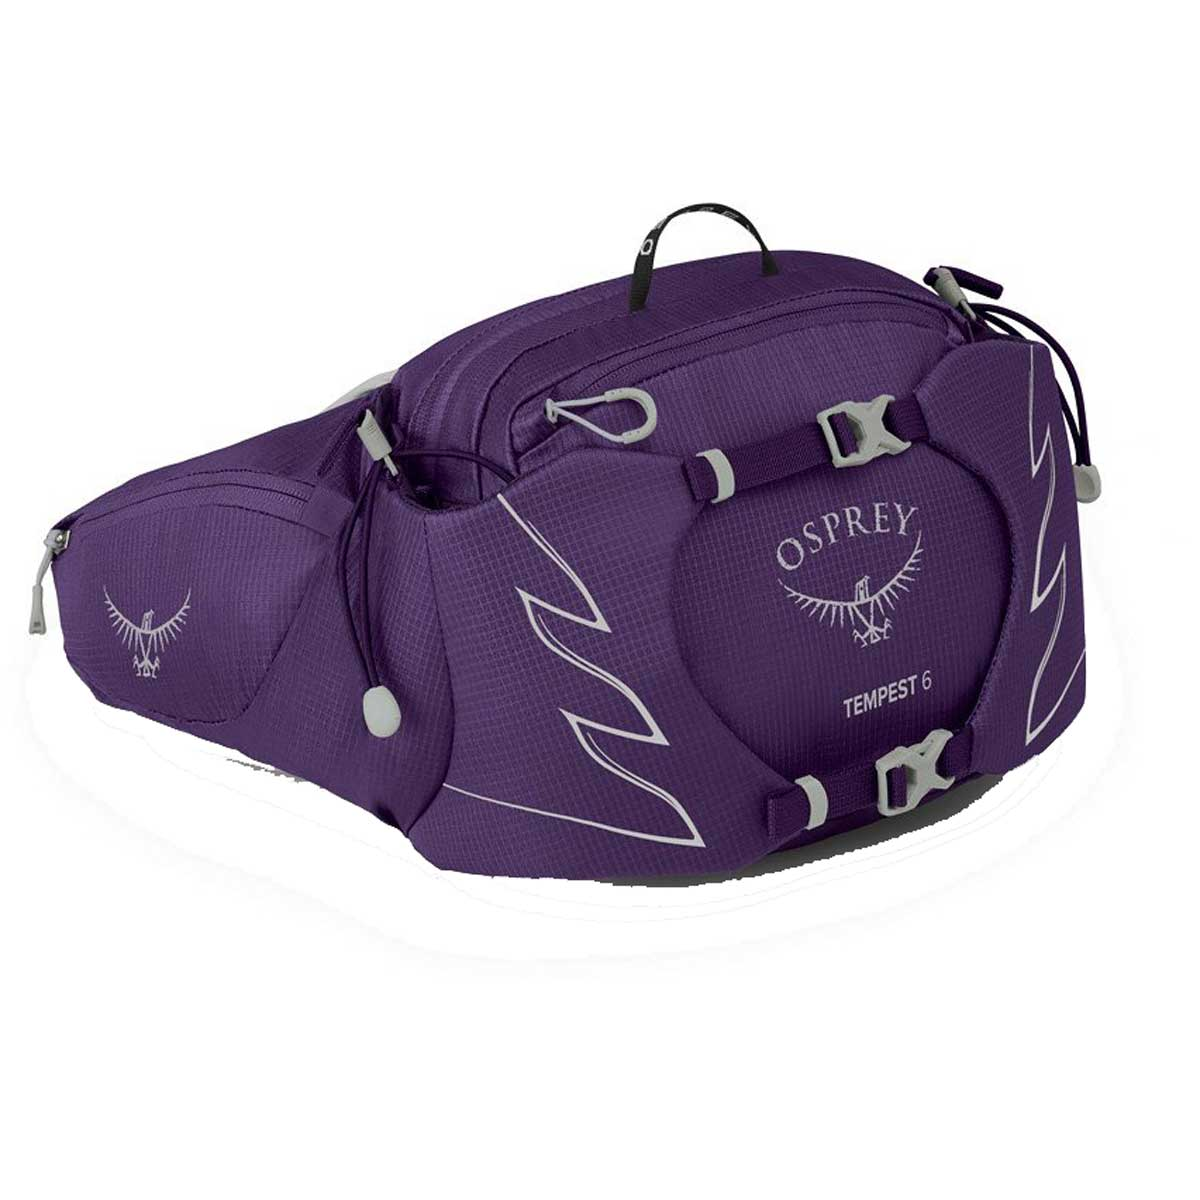 Osprey Tempest 6 Women's Waistpack in Violac Purple